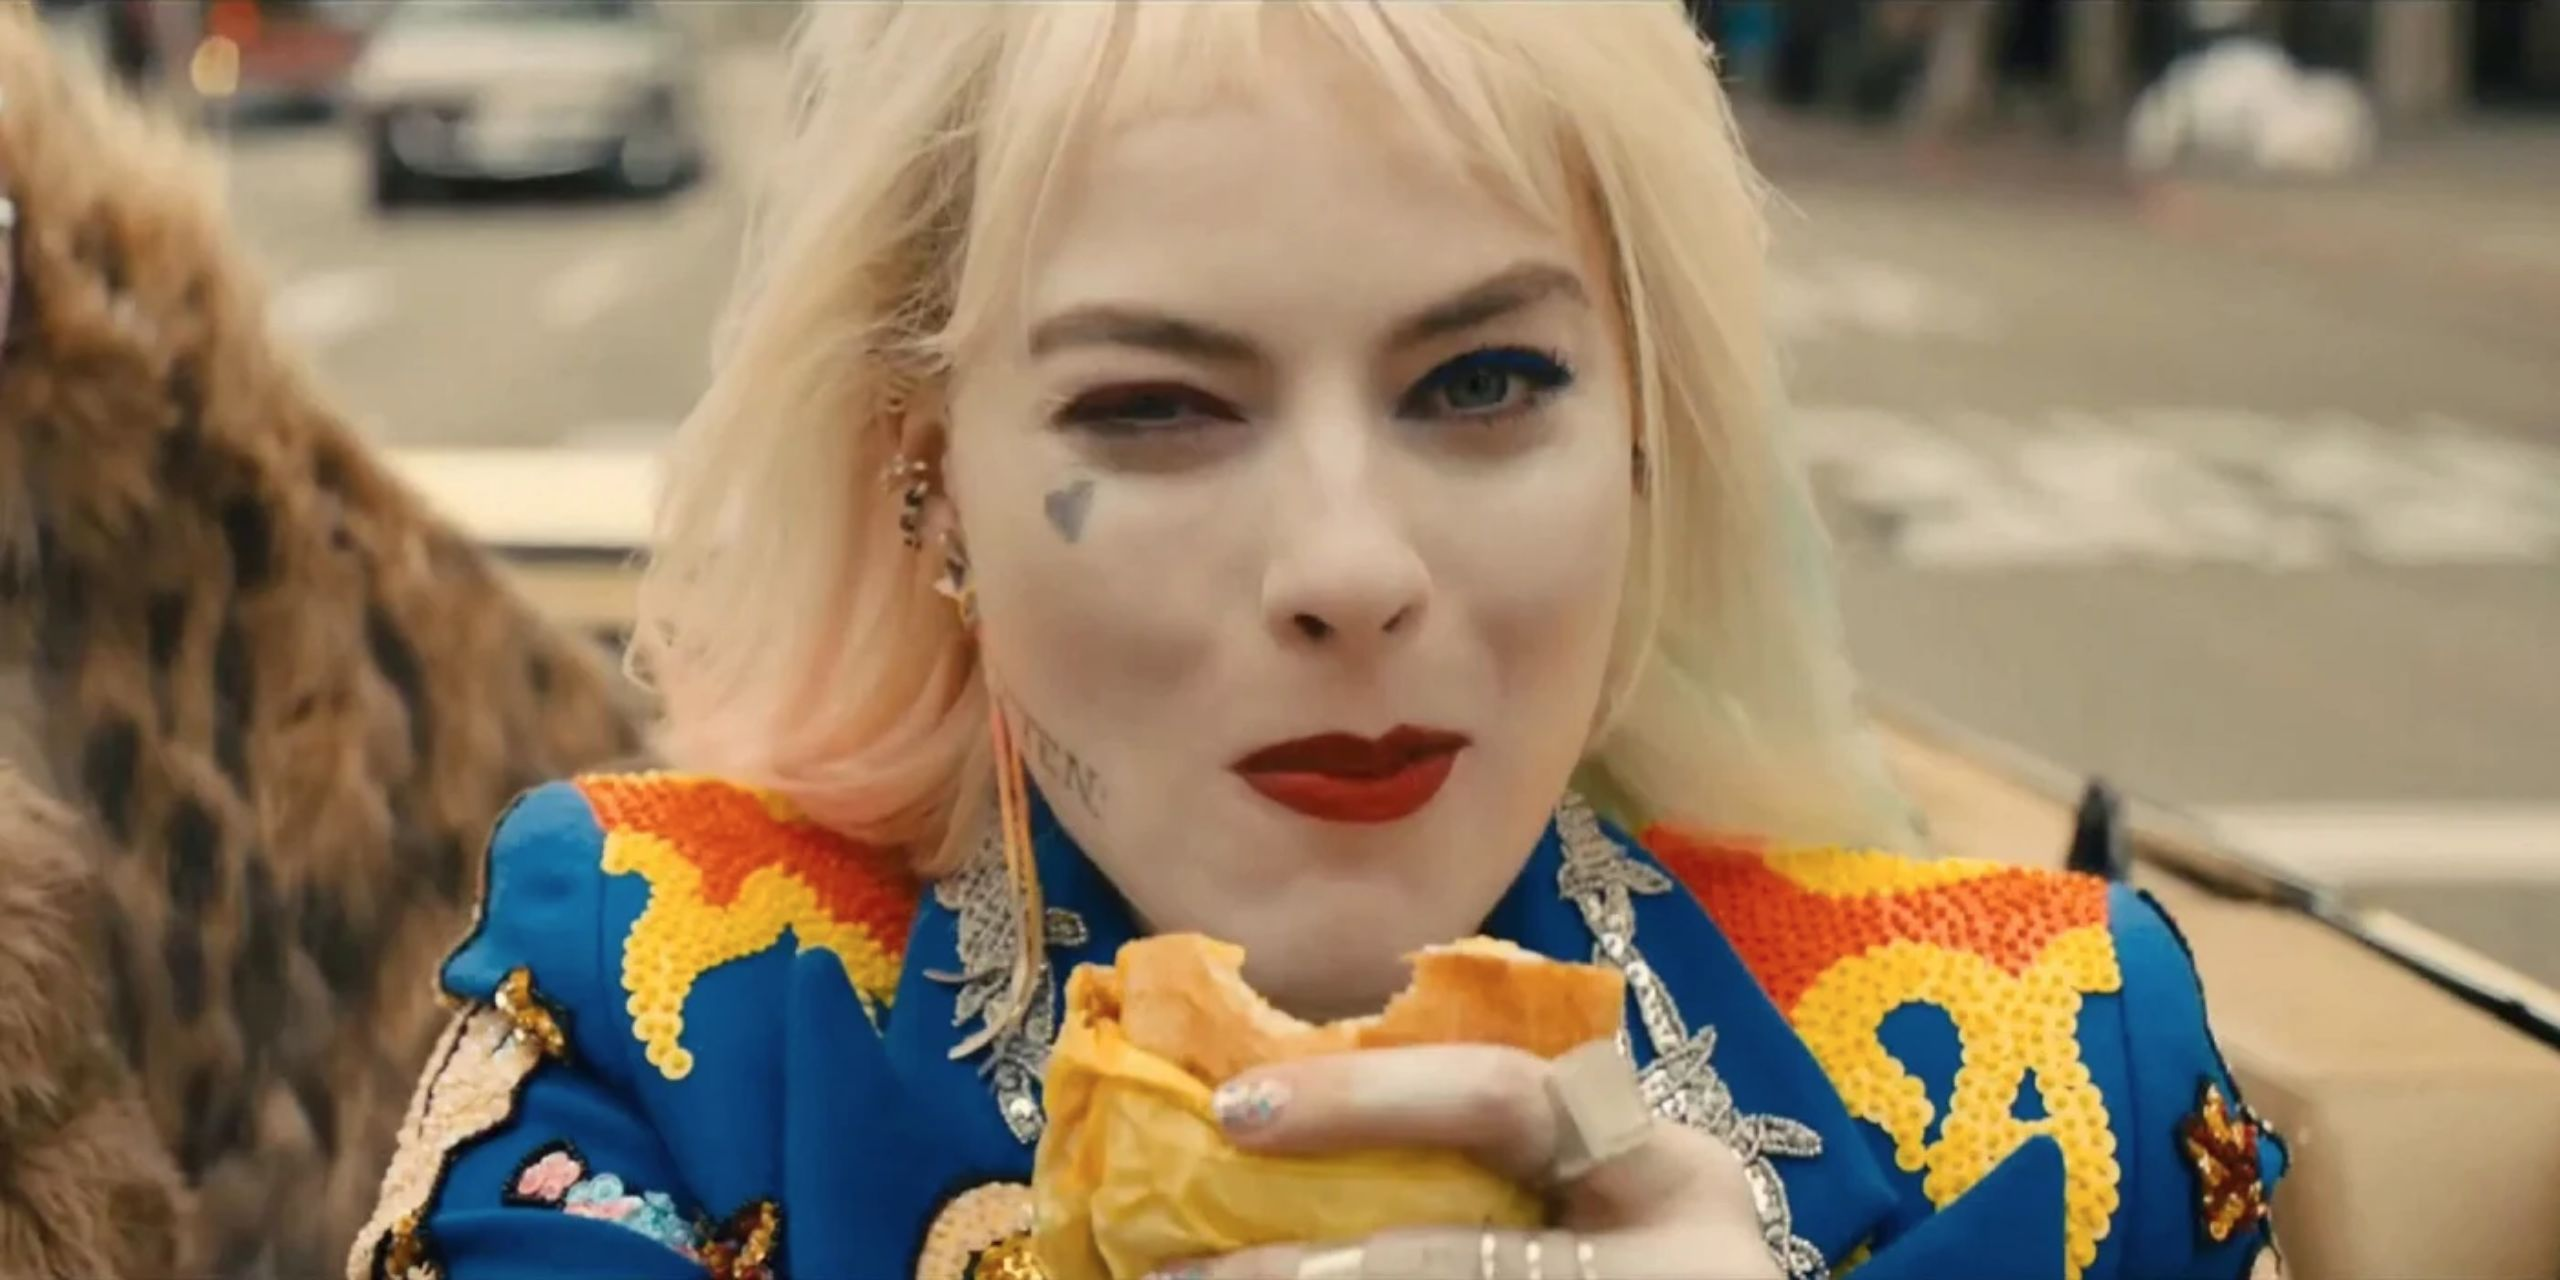 Chosen One Of The Day Harley Quinn S Bodega Sandwich In Birds Of Prey